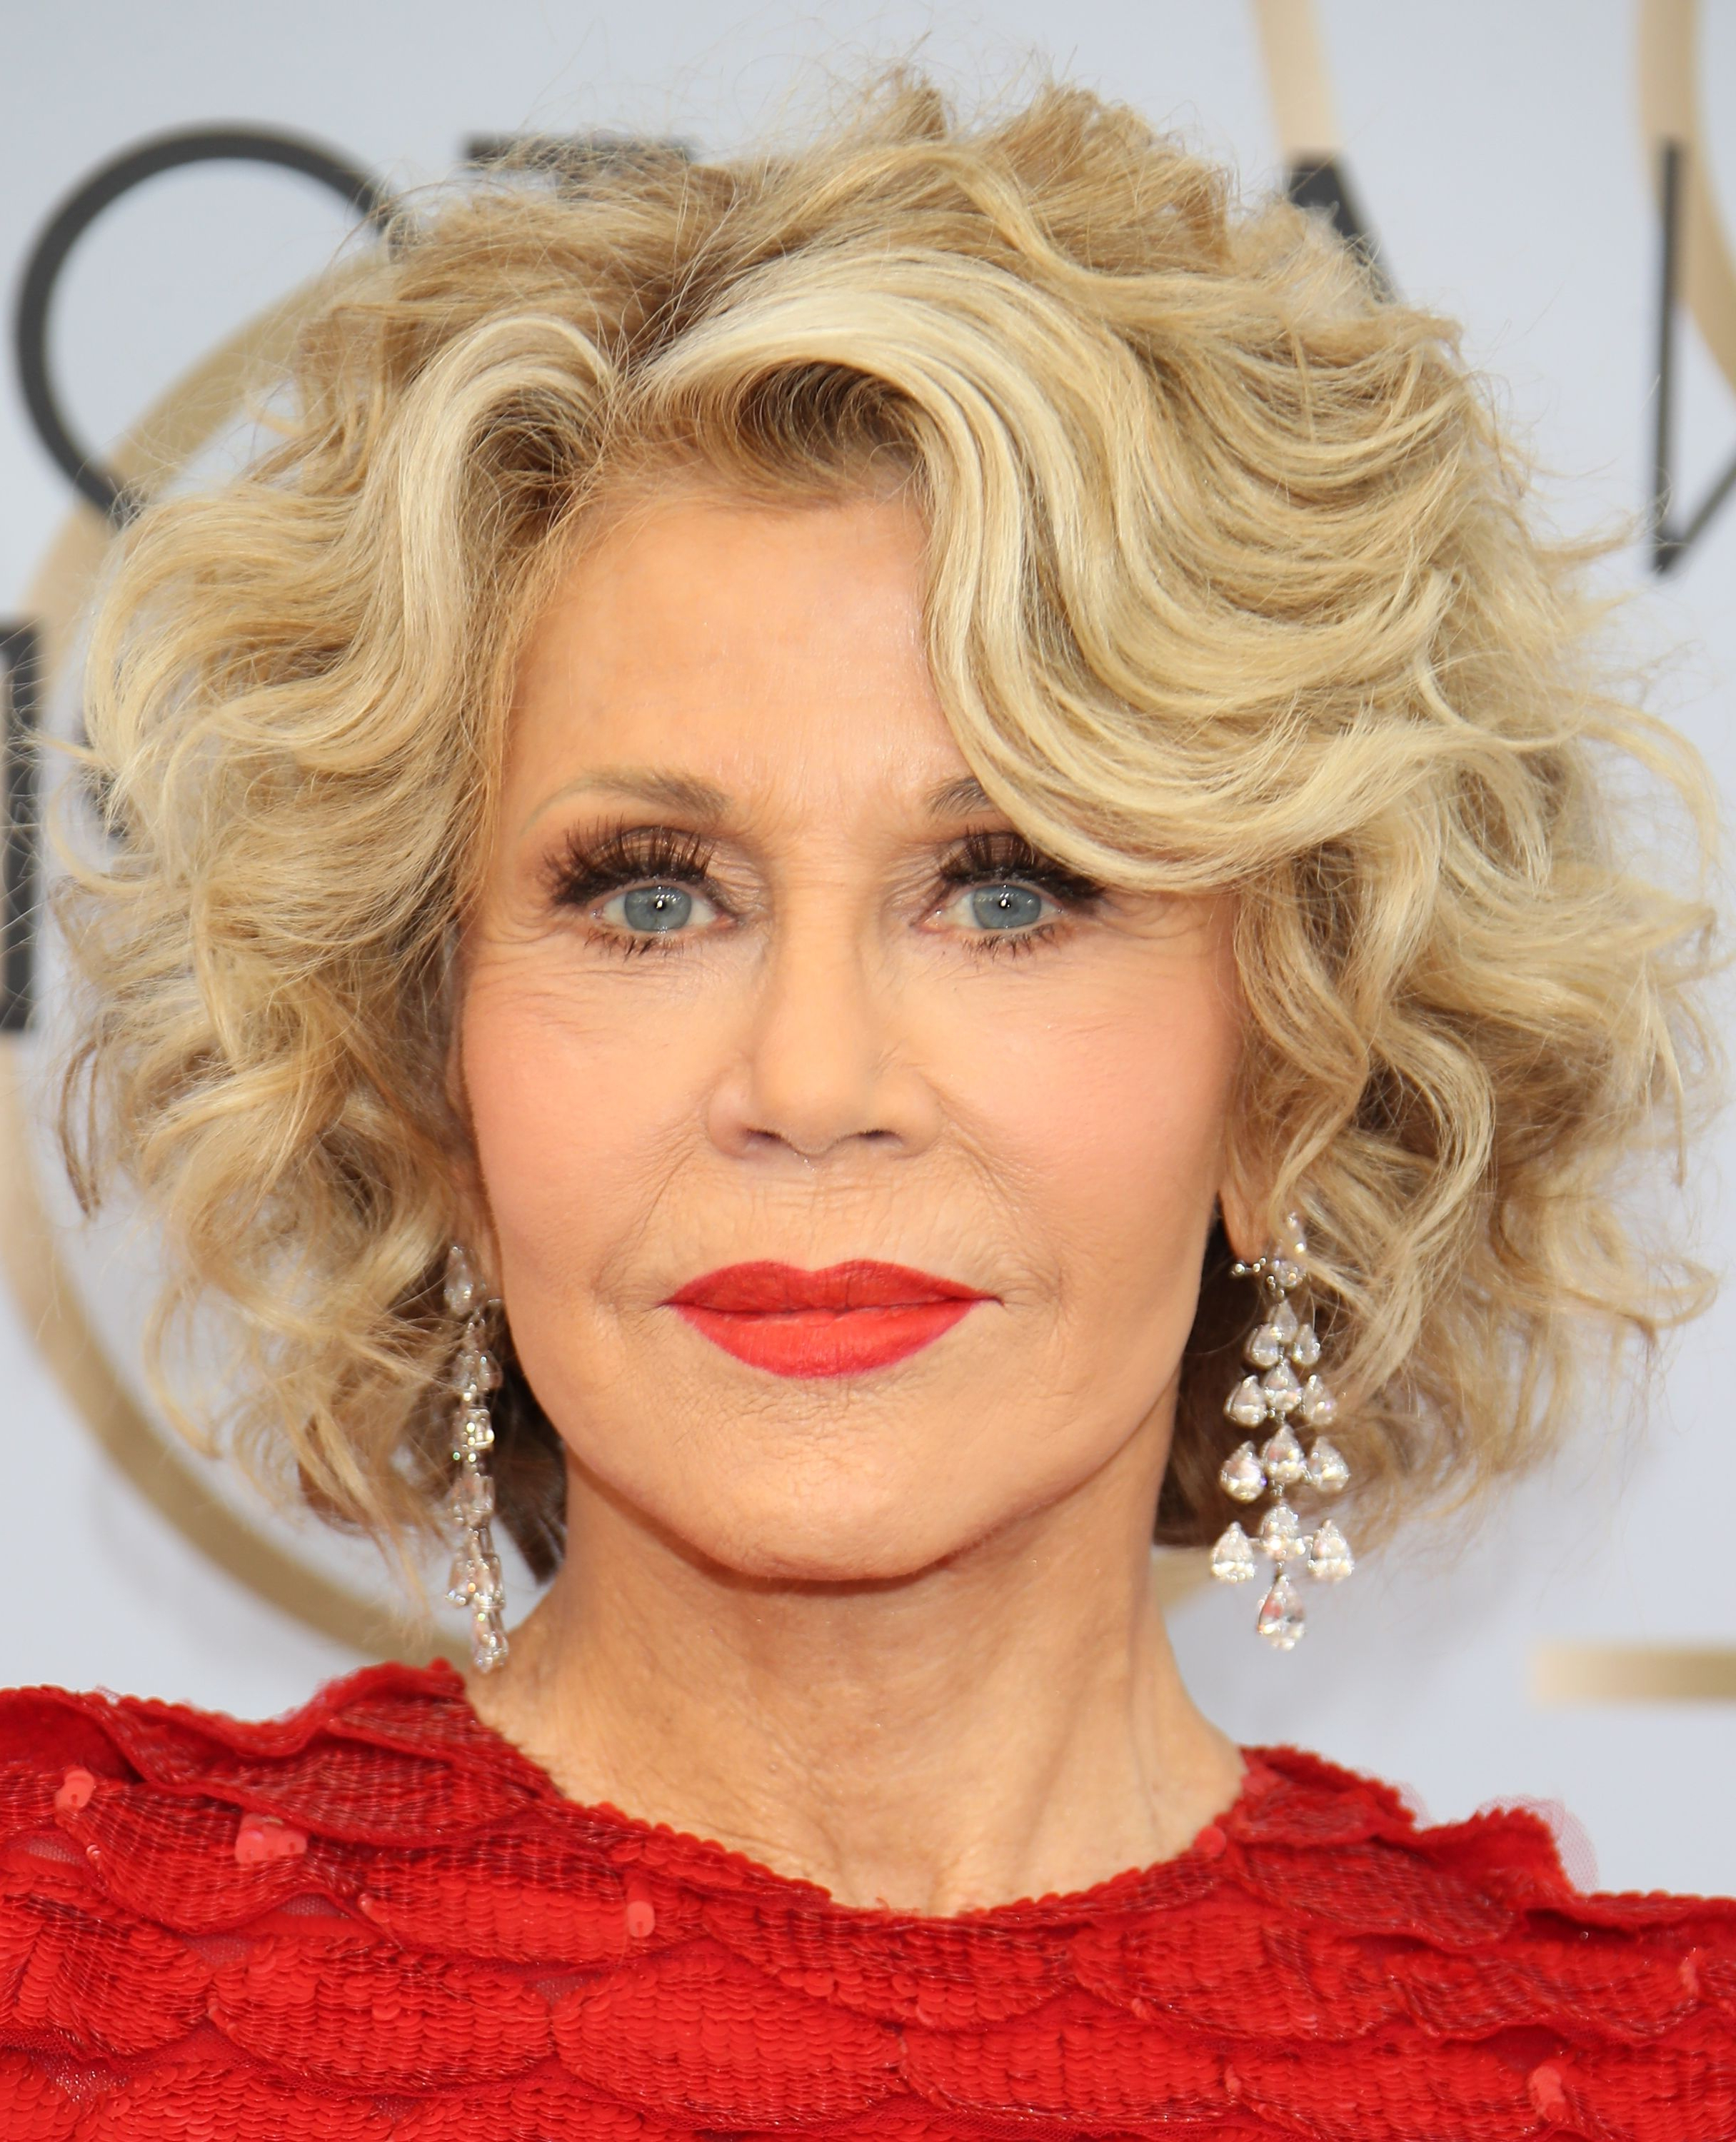 30 Hairstyles That Will Make You Look Younger – Anti Aging Throughout Recent Soft Highlighted Curls Hairstyles With Side Part (Gallery 20 of 20)